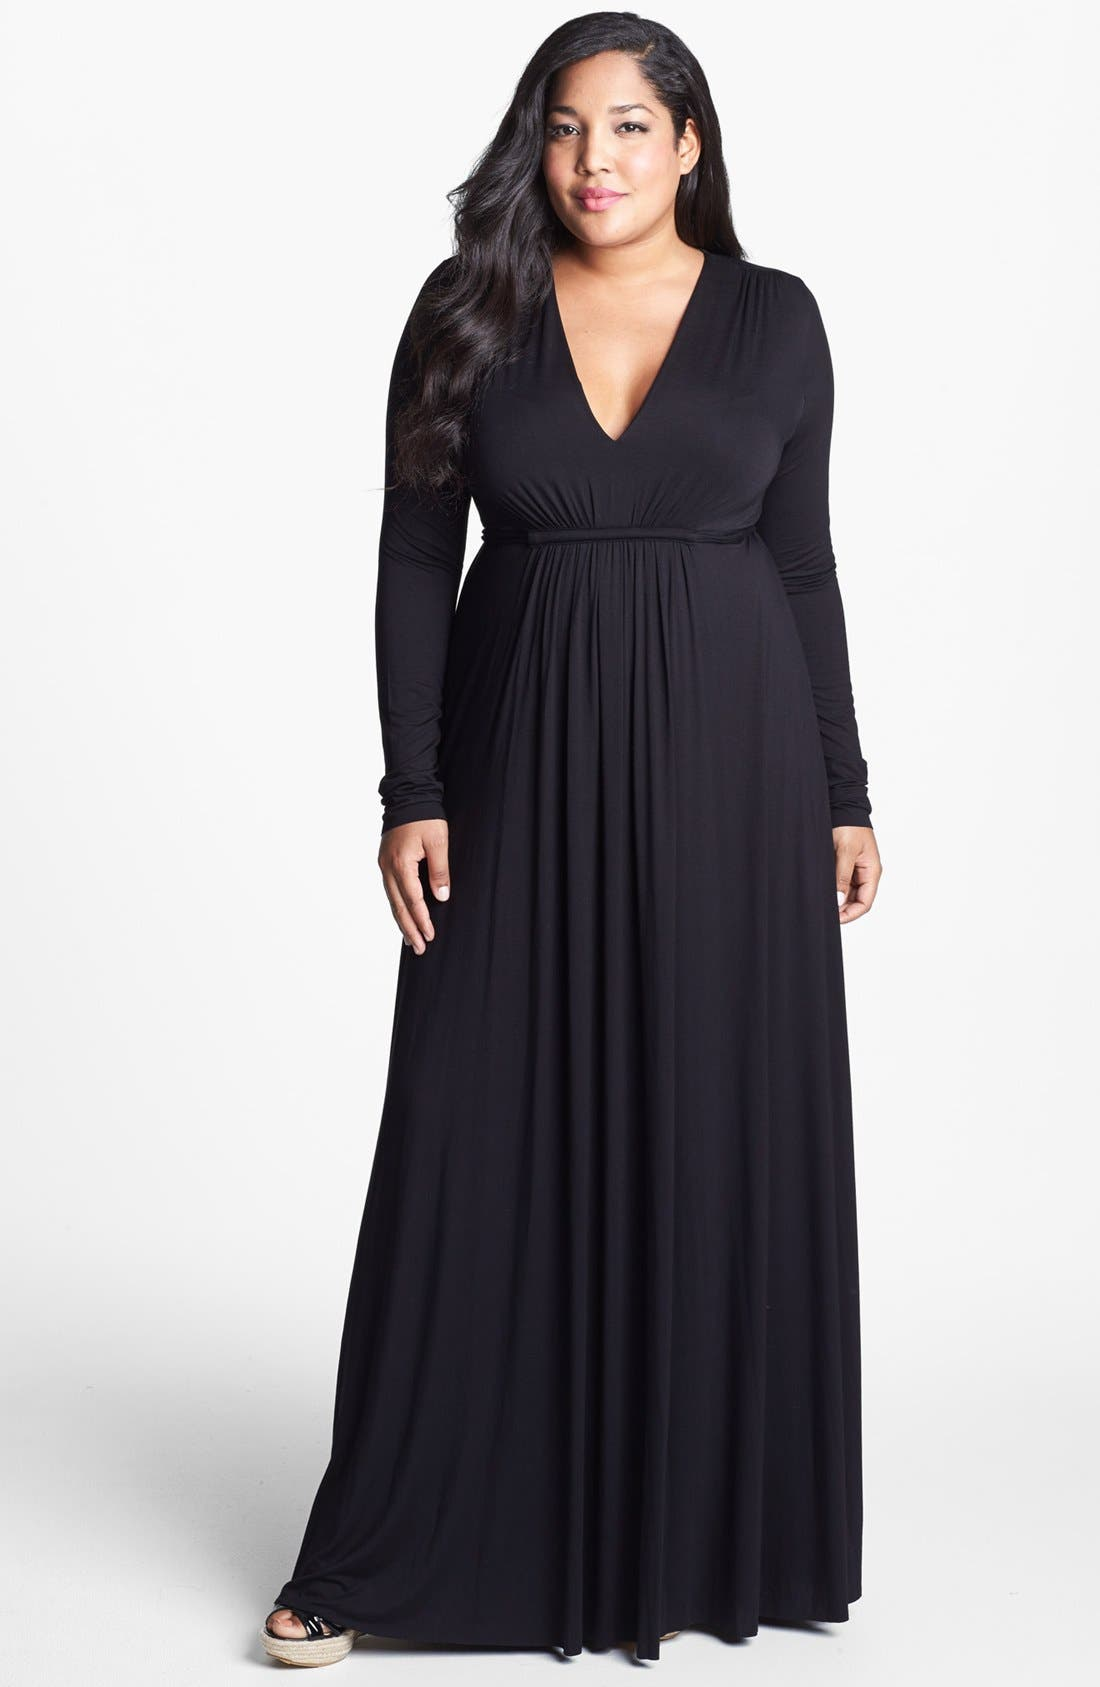 Alternate Image 1 Selected - Rachel Pally Caftan Maxi Dress (Plus Size)